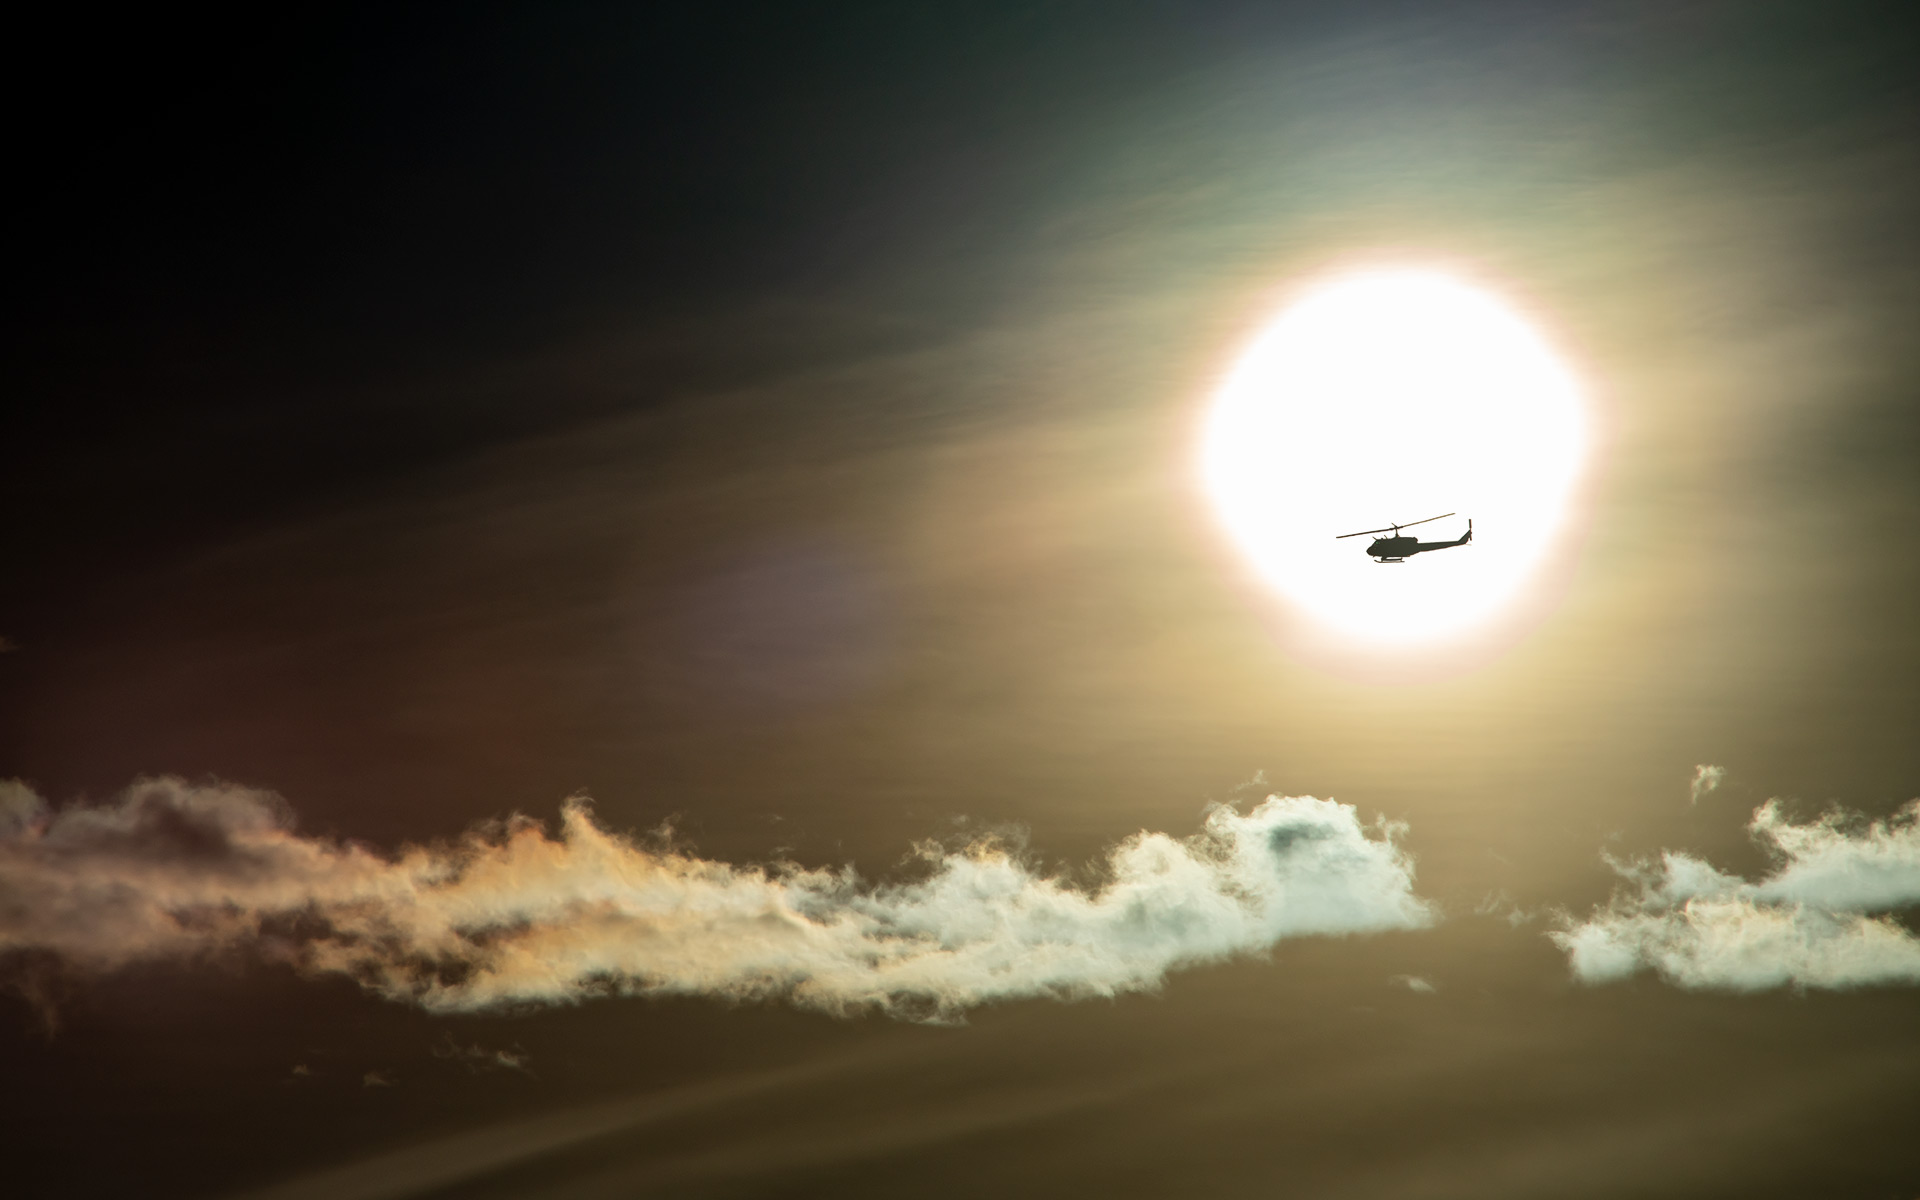 a helicopter in the morning in front of the sun!